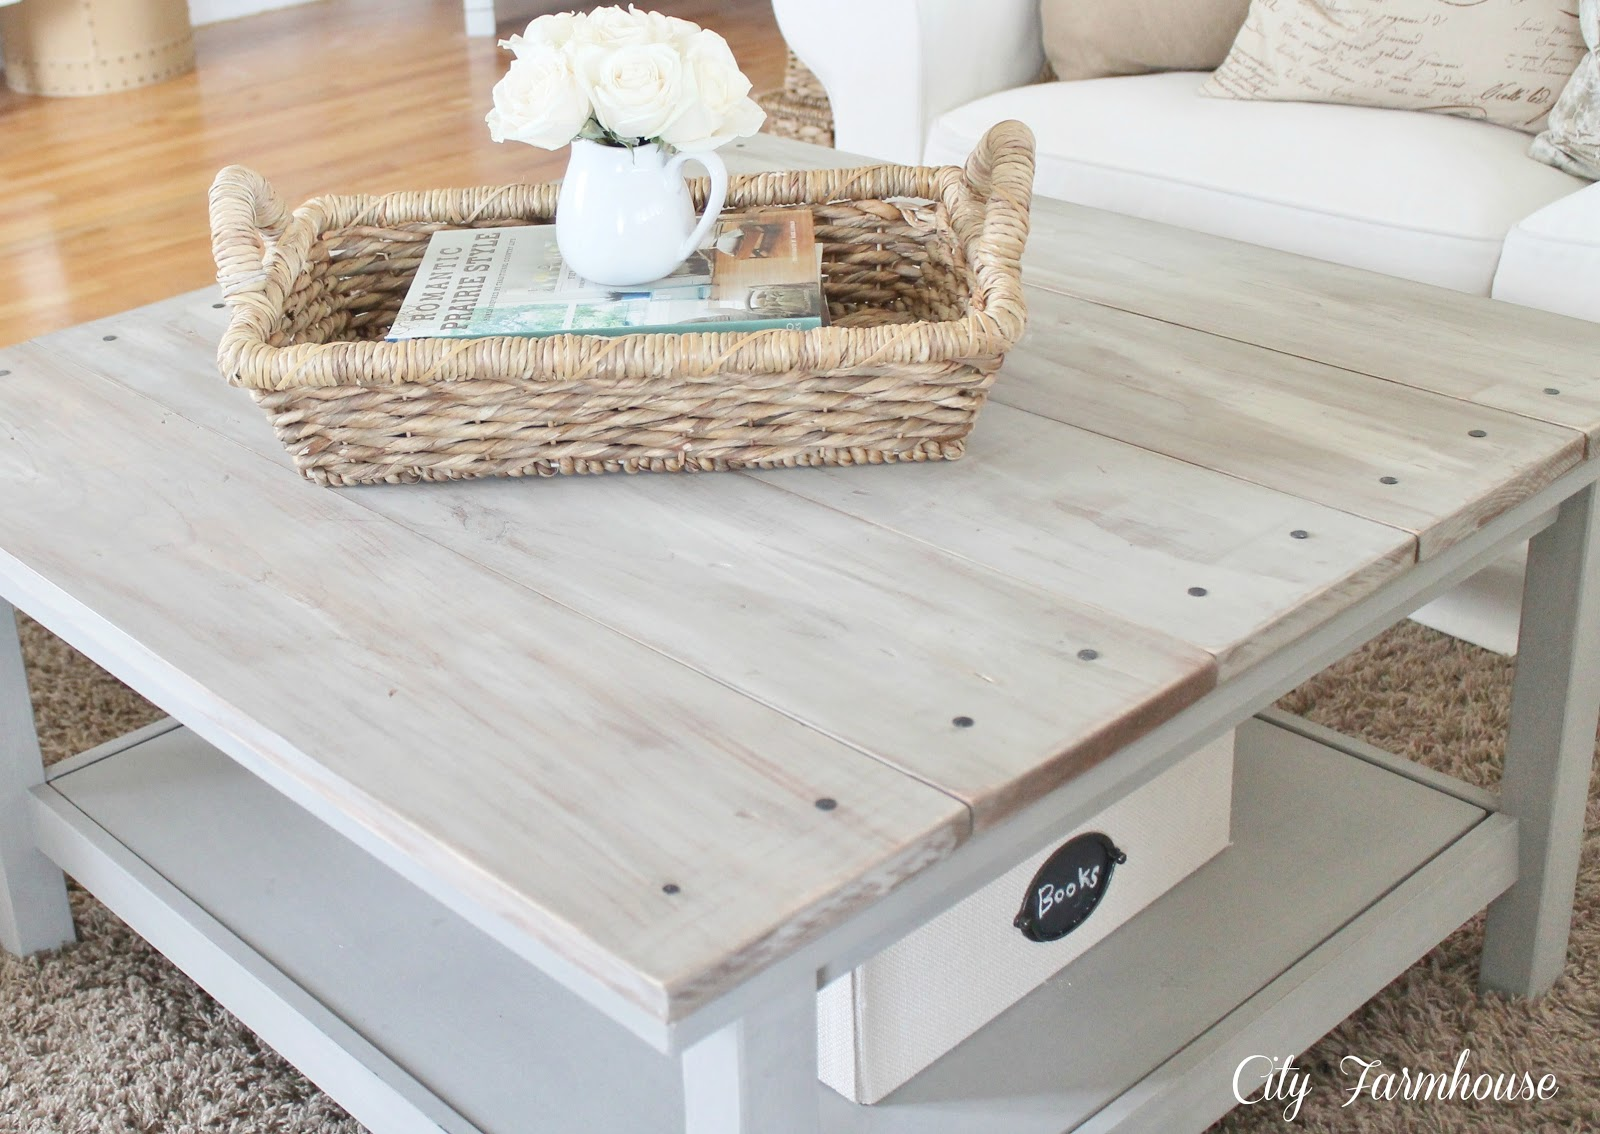 Astounding Ikea Hacked Barnboard Coffee Table Tutorial City Farmhouse Caraccident5 Cool Chair Designs And Ideas Caraccident5Info